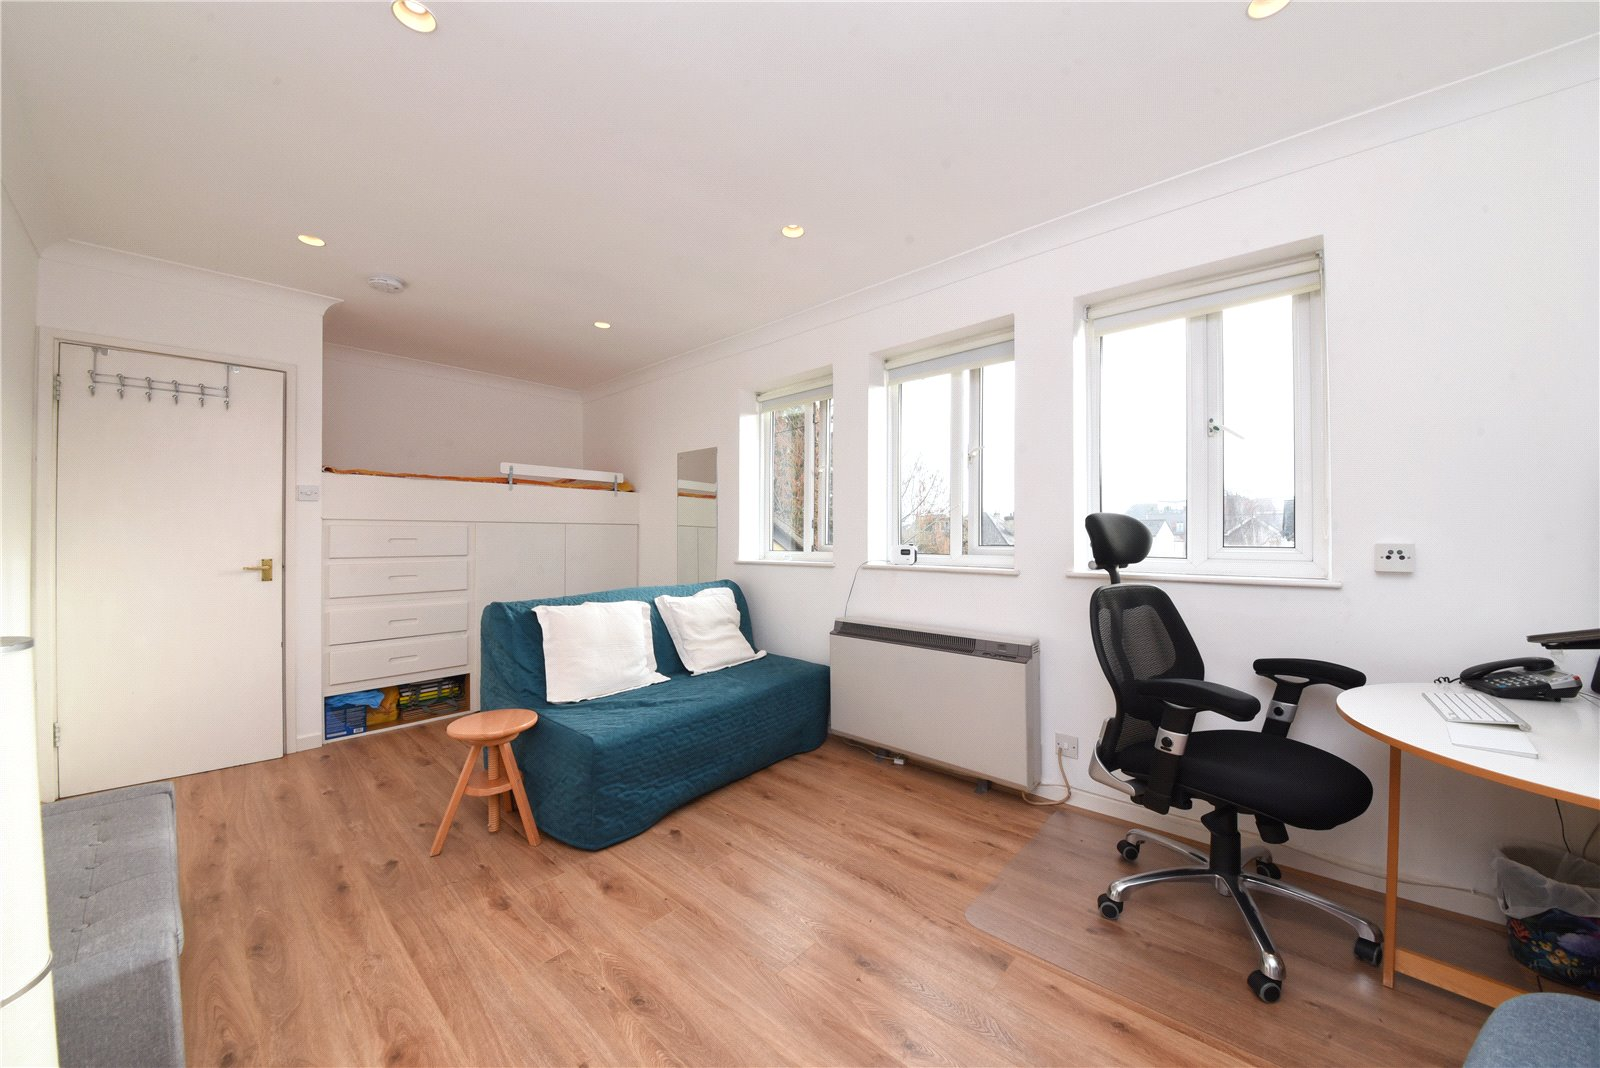 Apartment for sale in New Barnet, EN4 9PJ, EN4